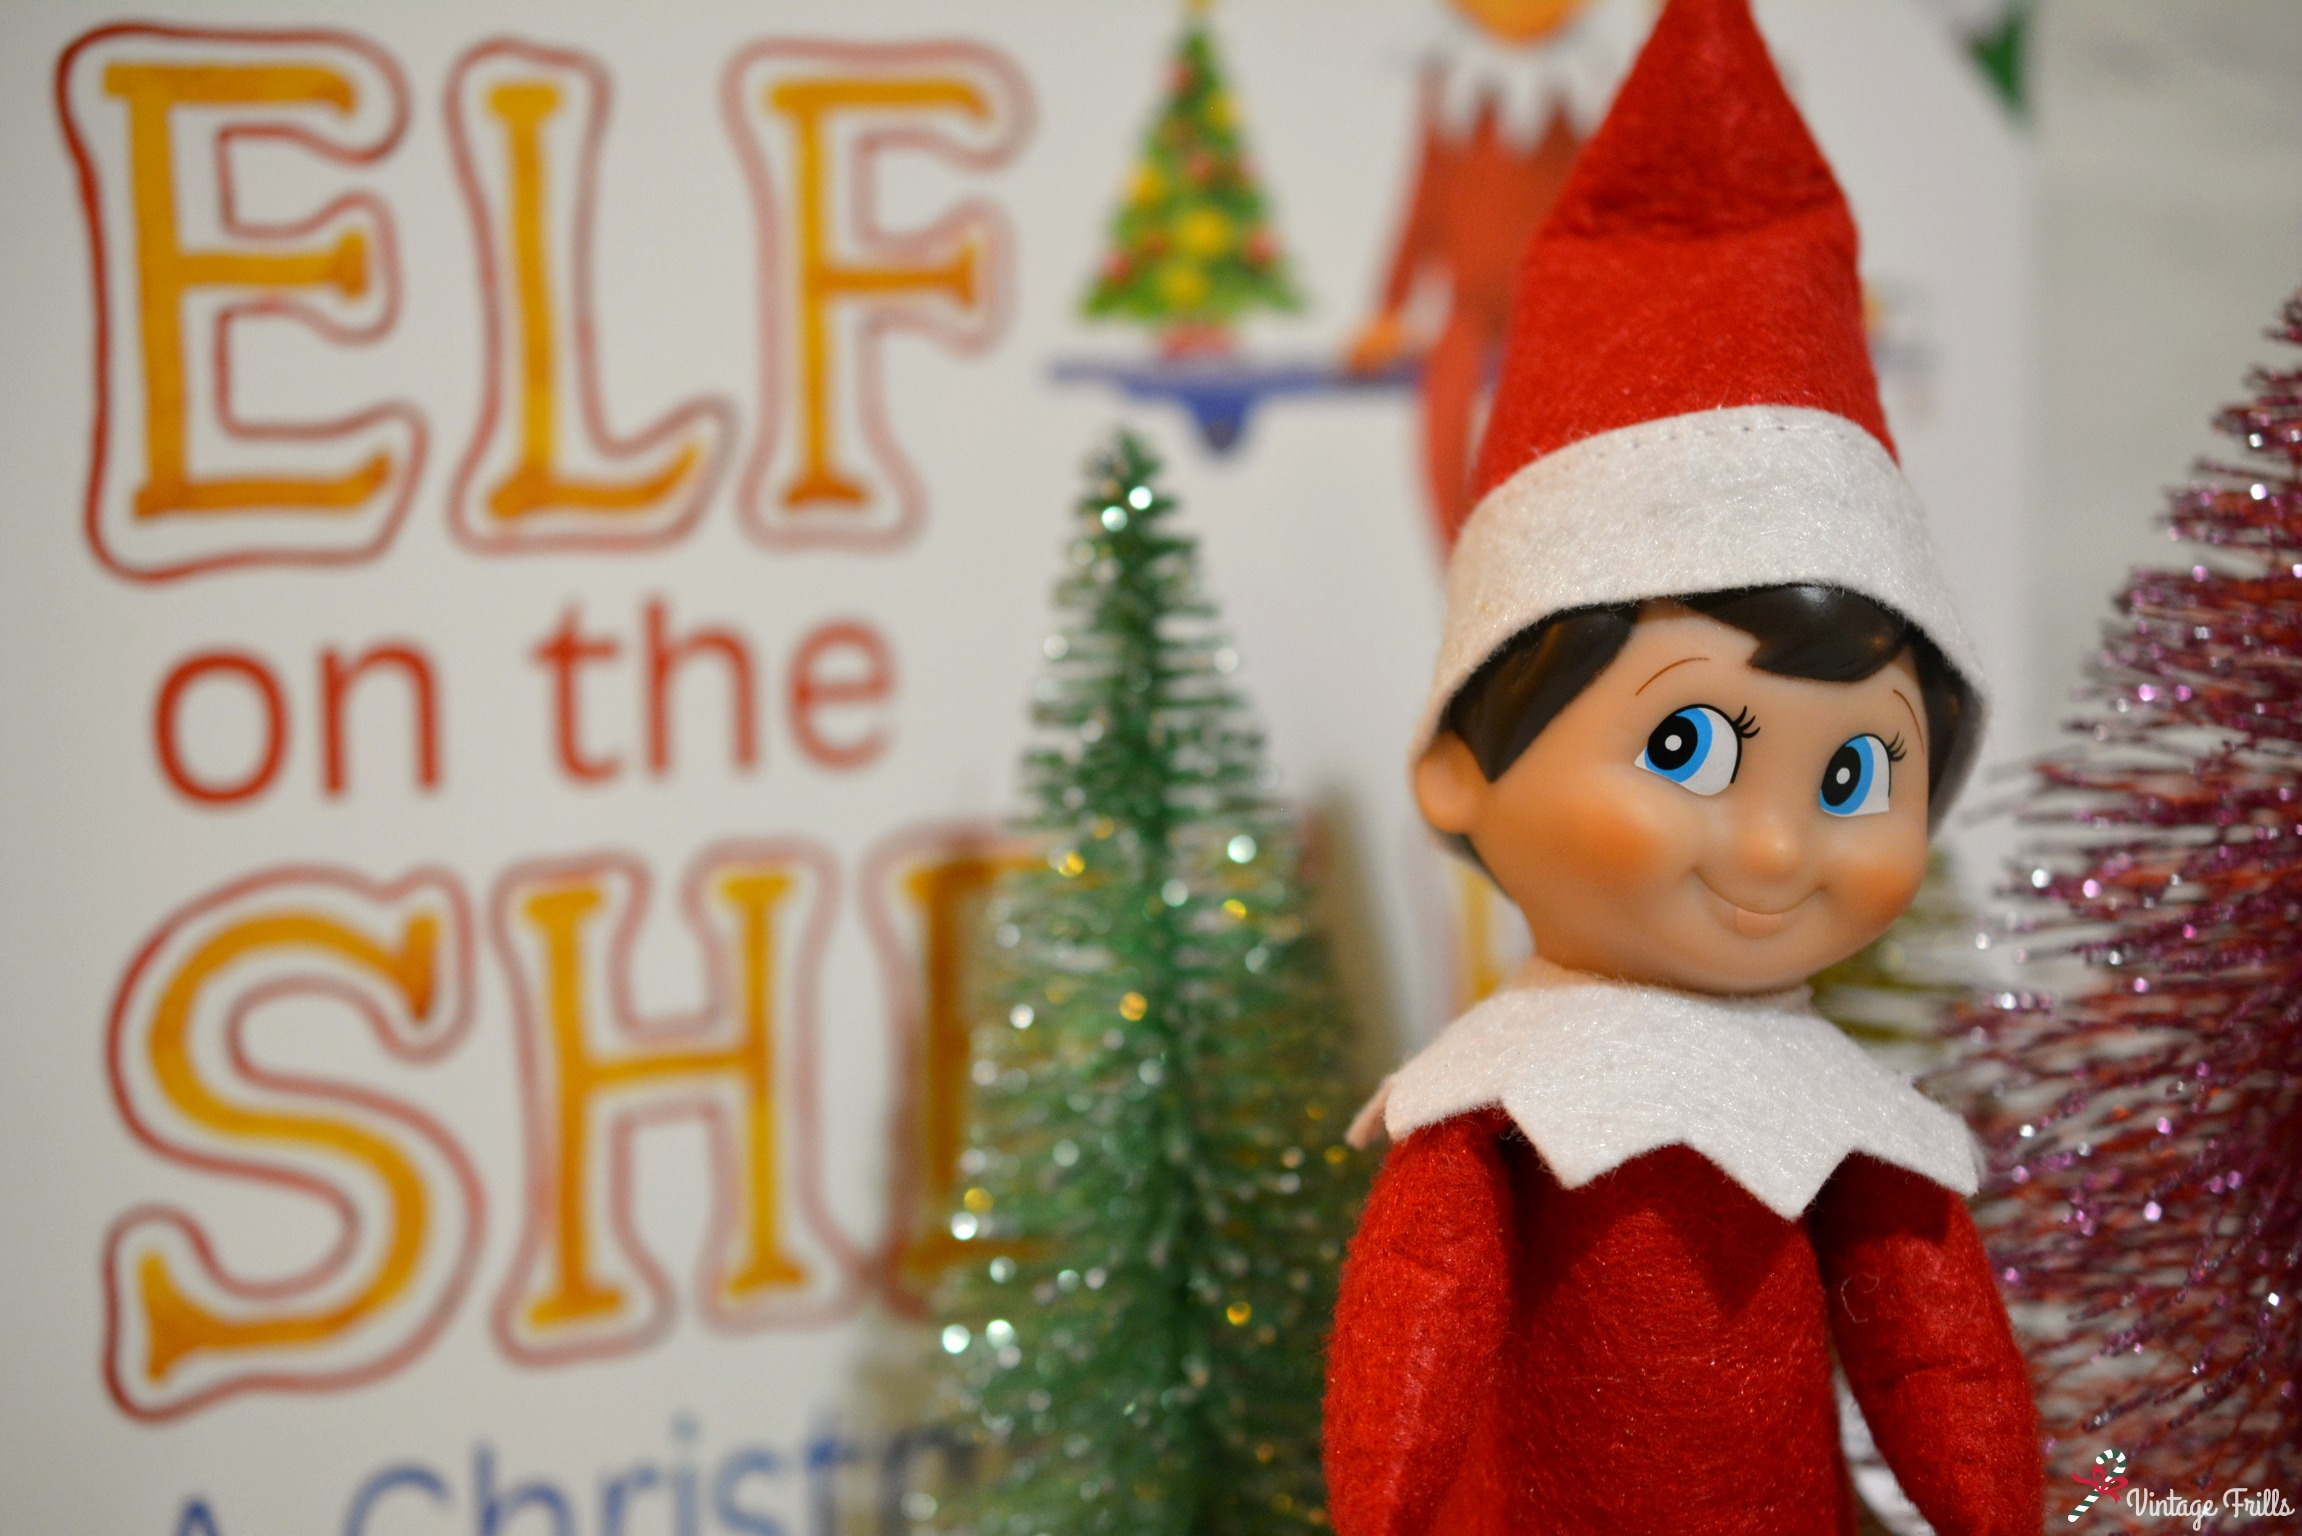 Introducing Our Elf on the Shelf Gavin! #Blogmas